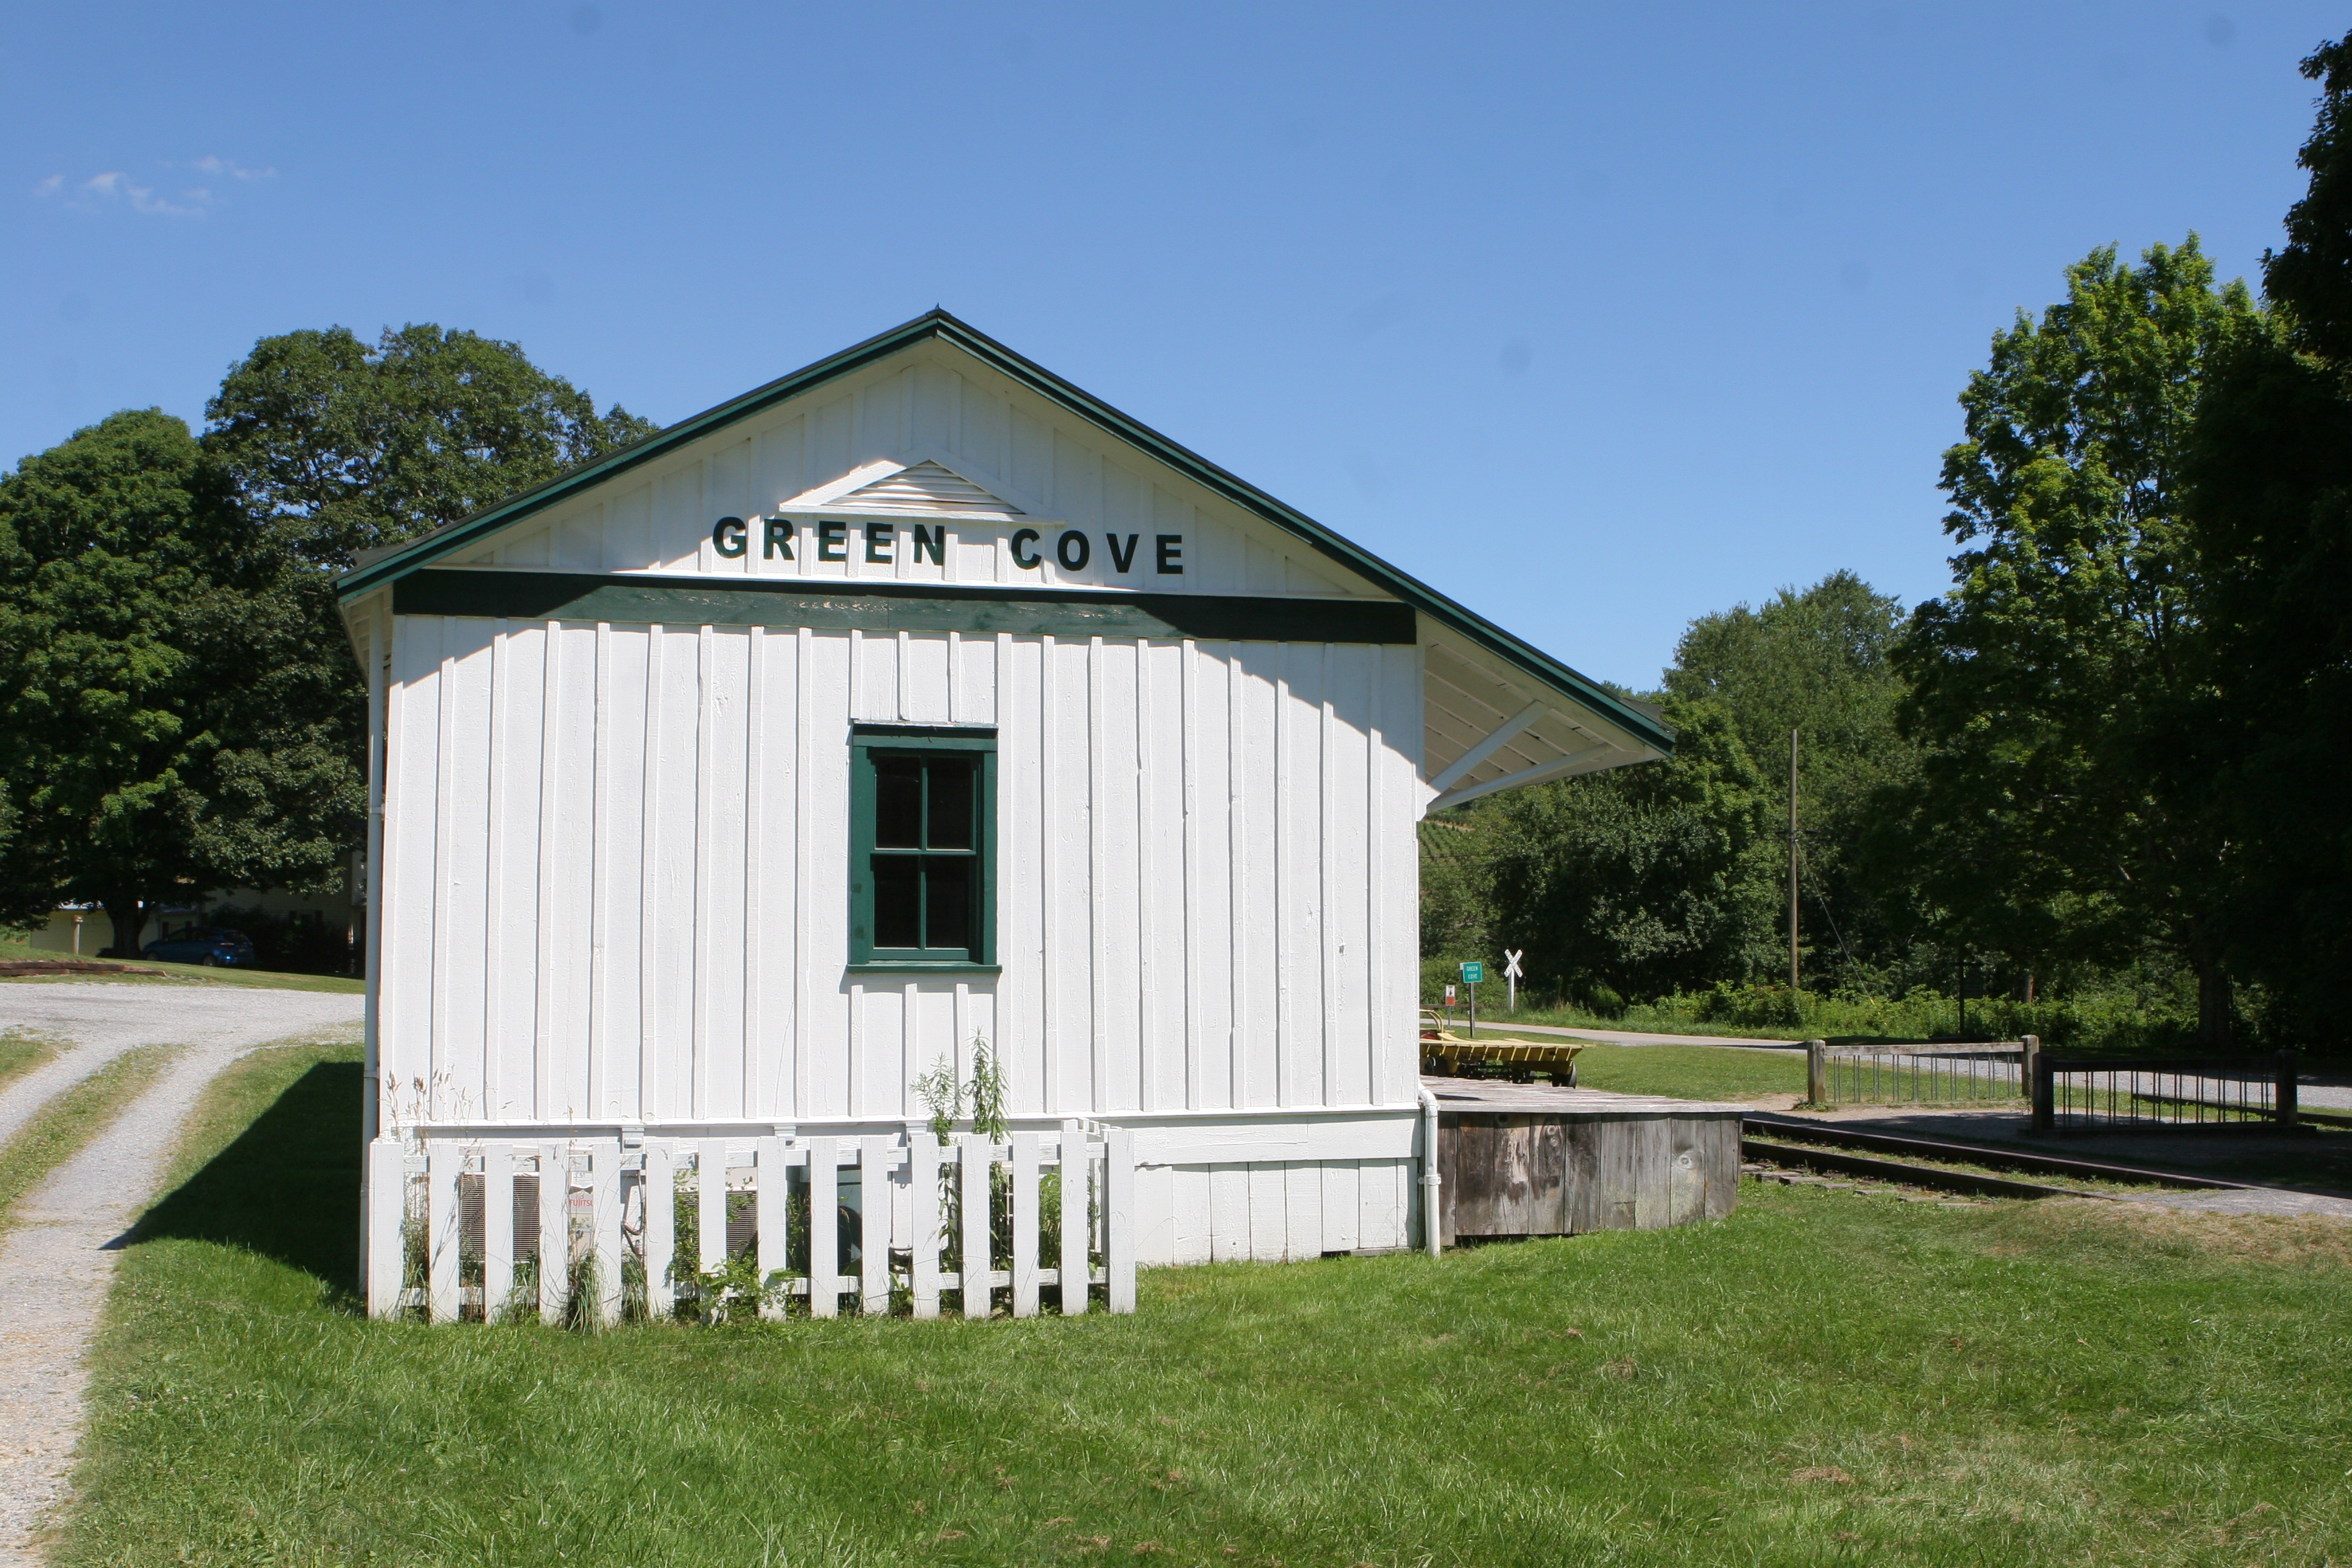 green cove virginia